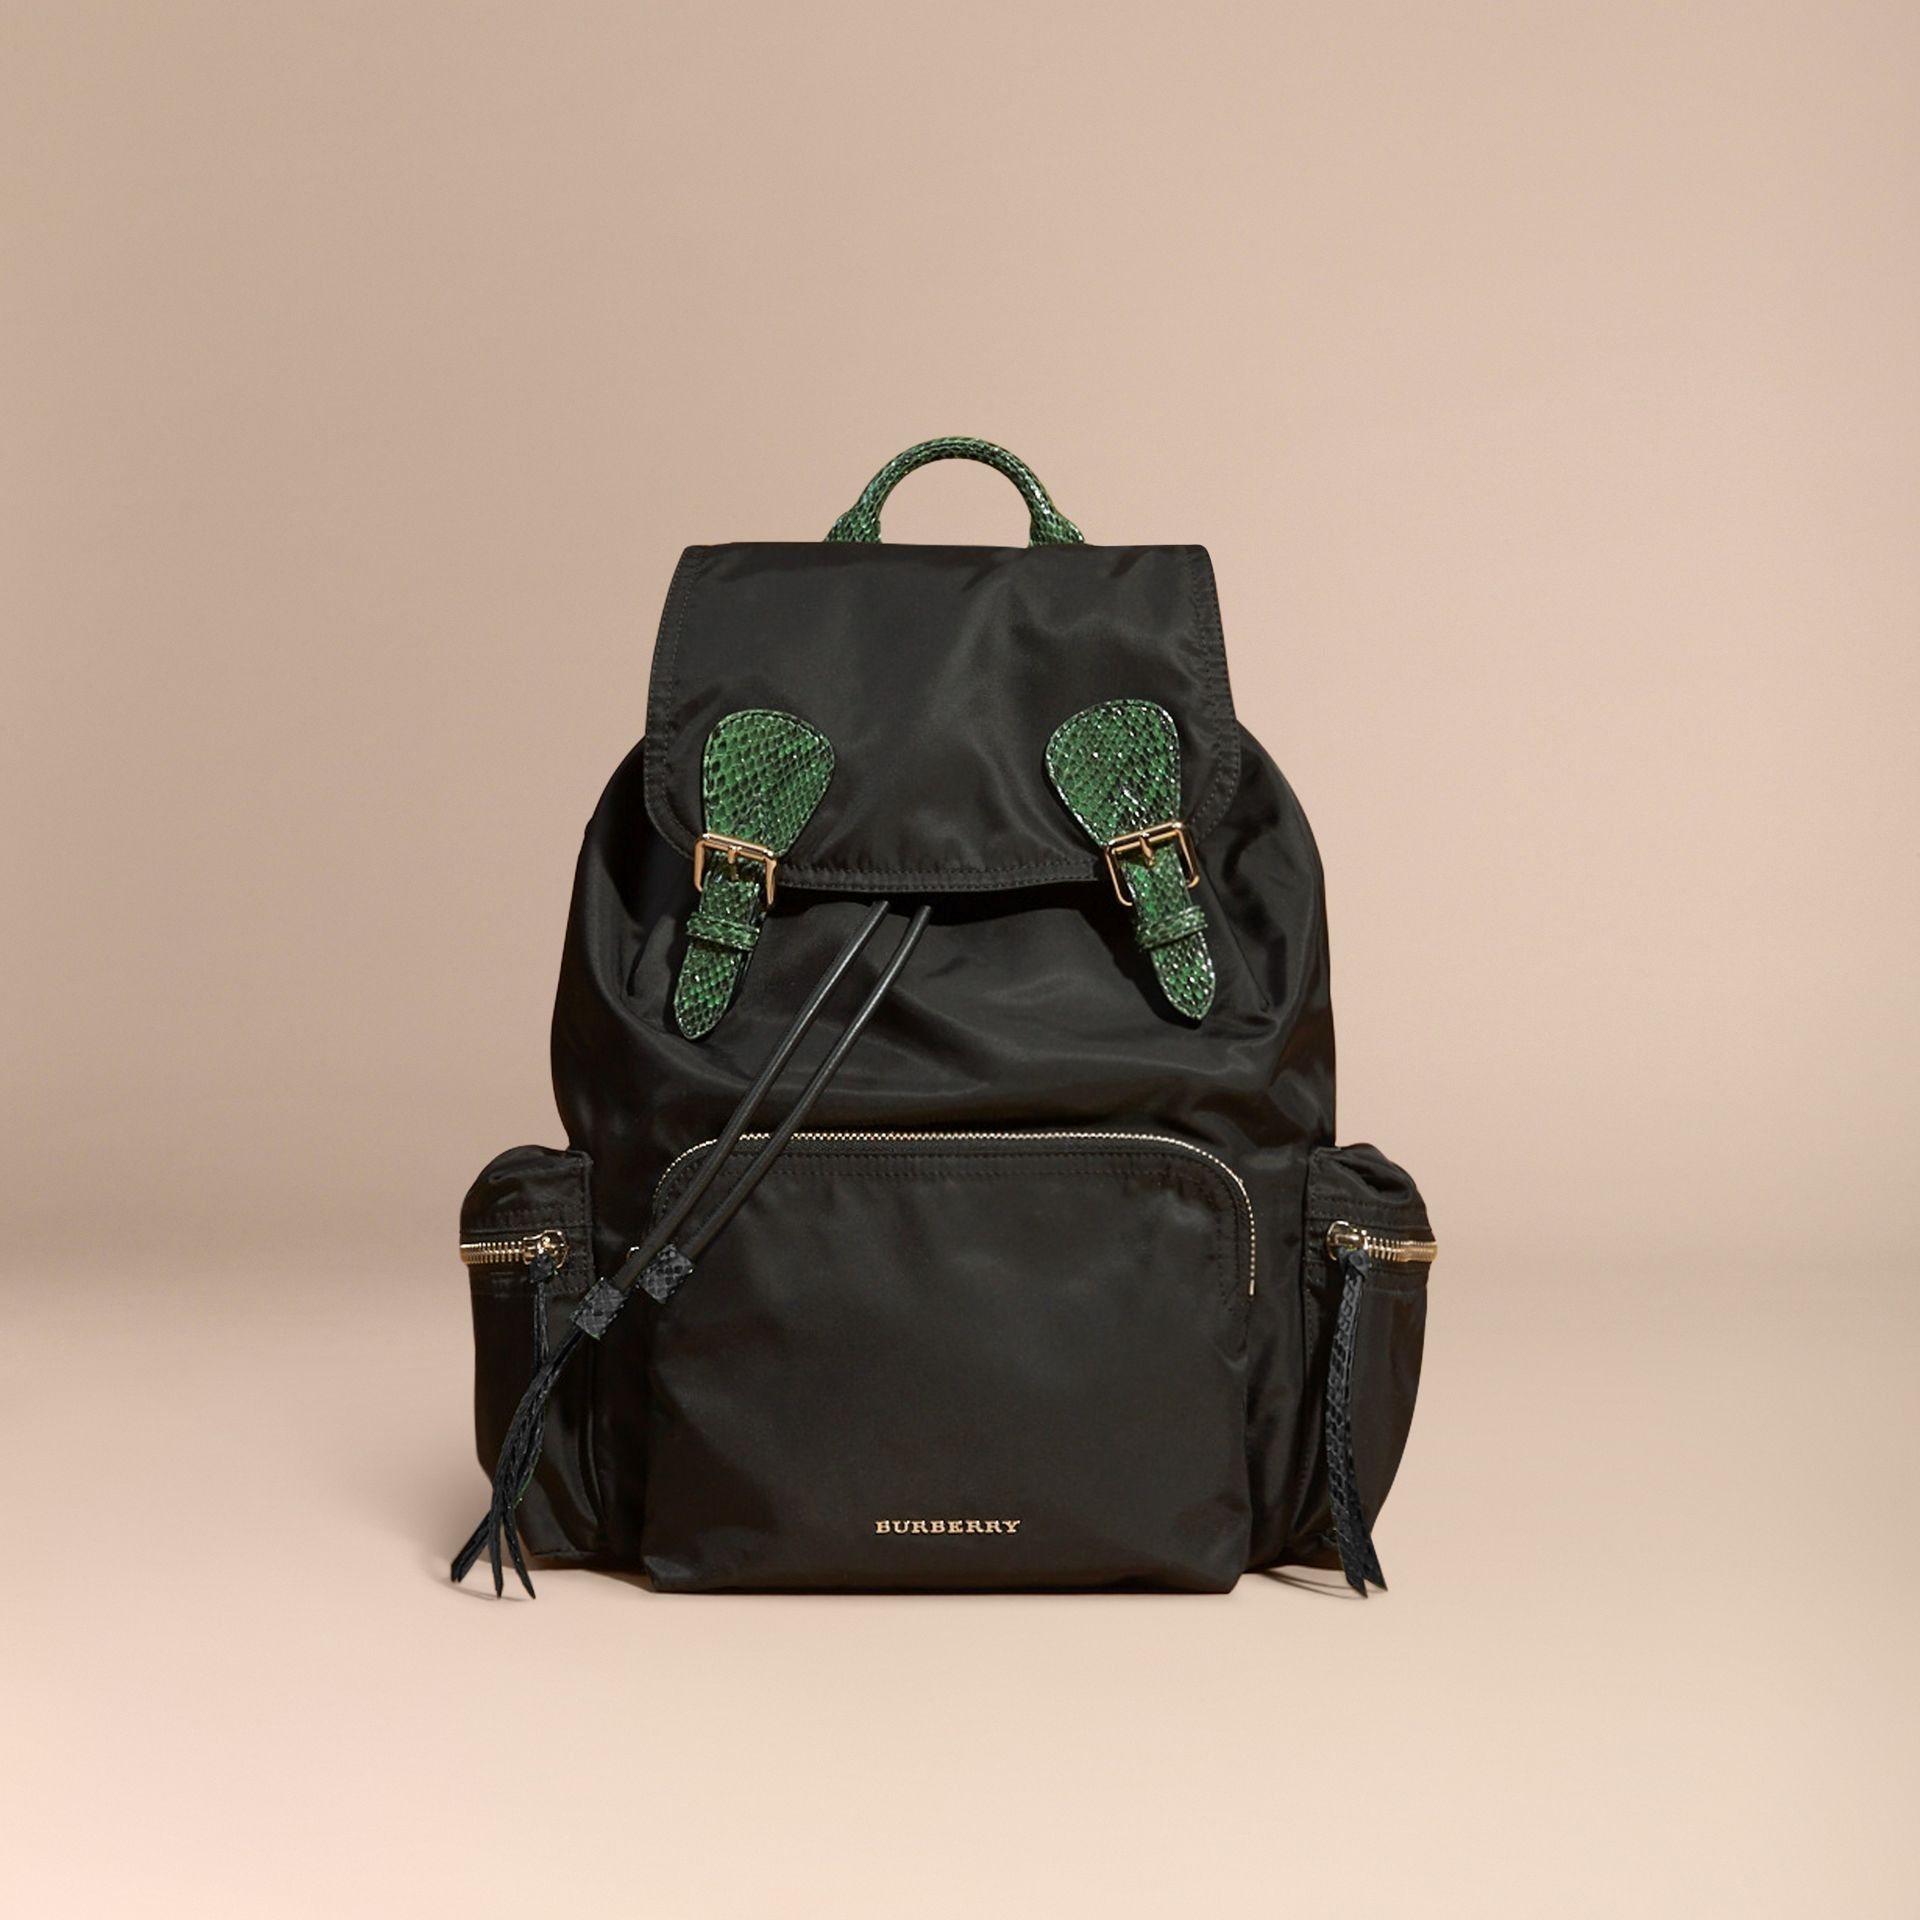 Black/bright green The Large Rucksack in Technical Nylon and Snakeskin Black/bright Green - gallery image 10